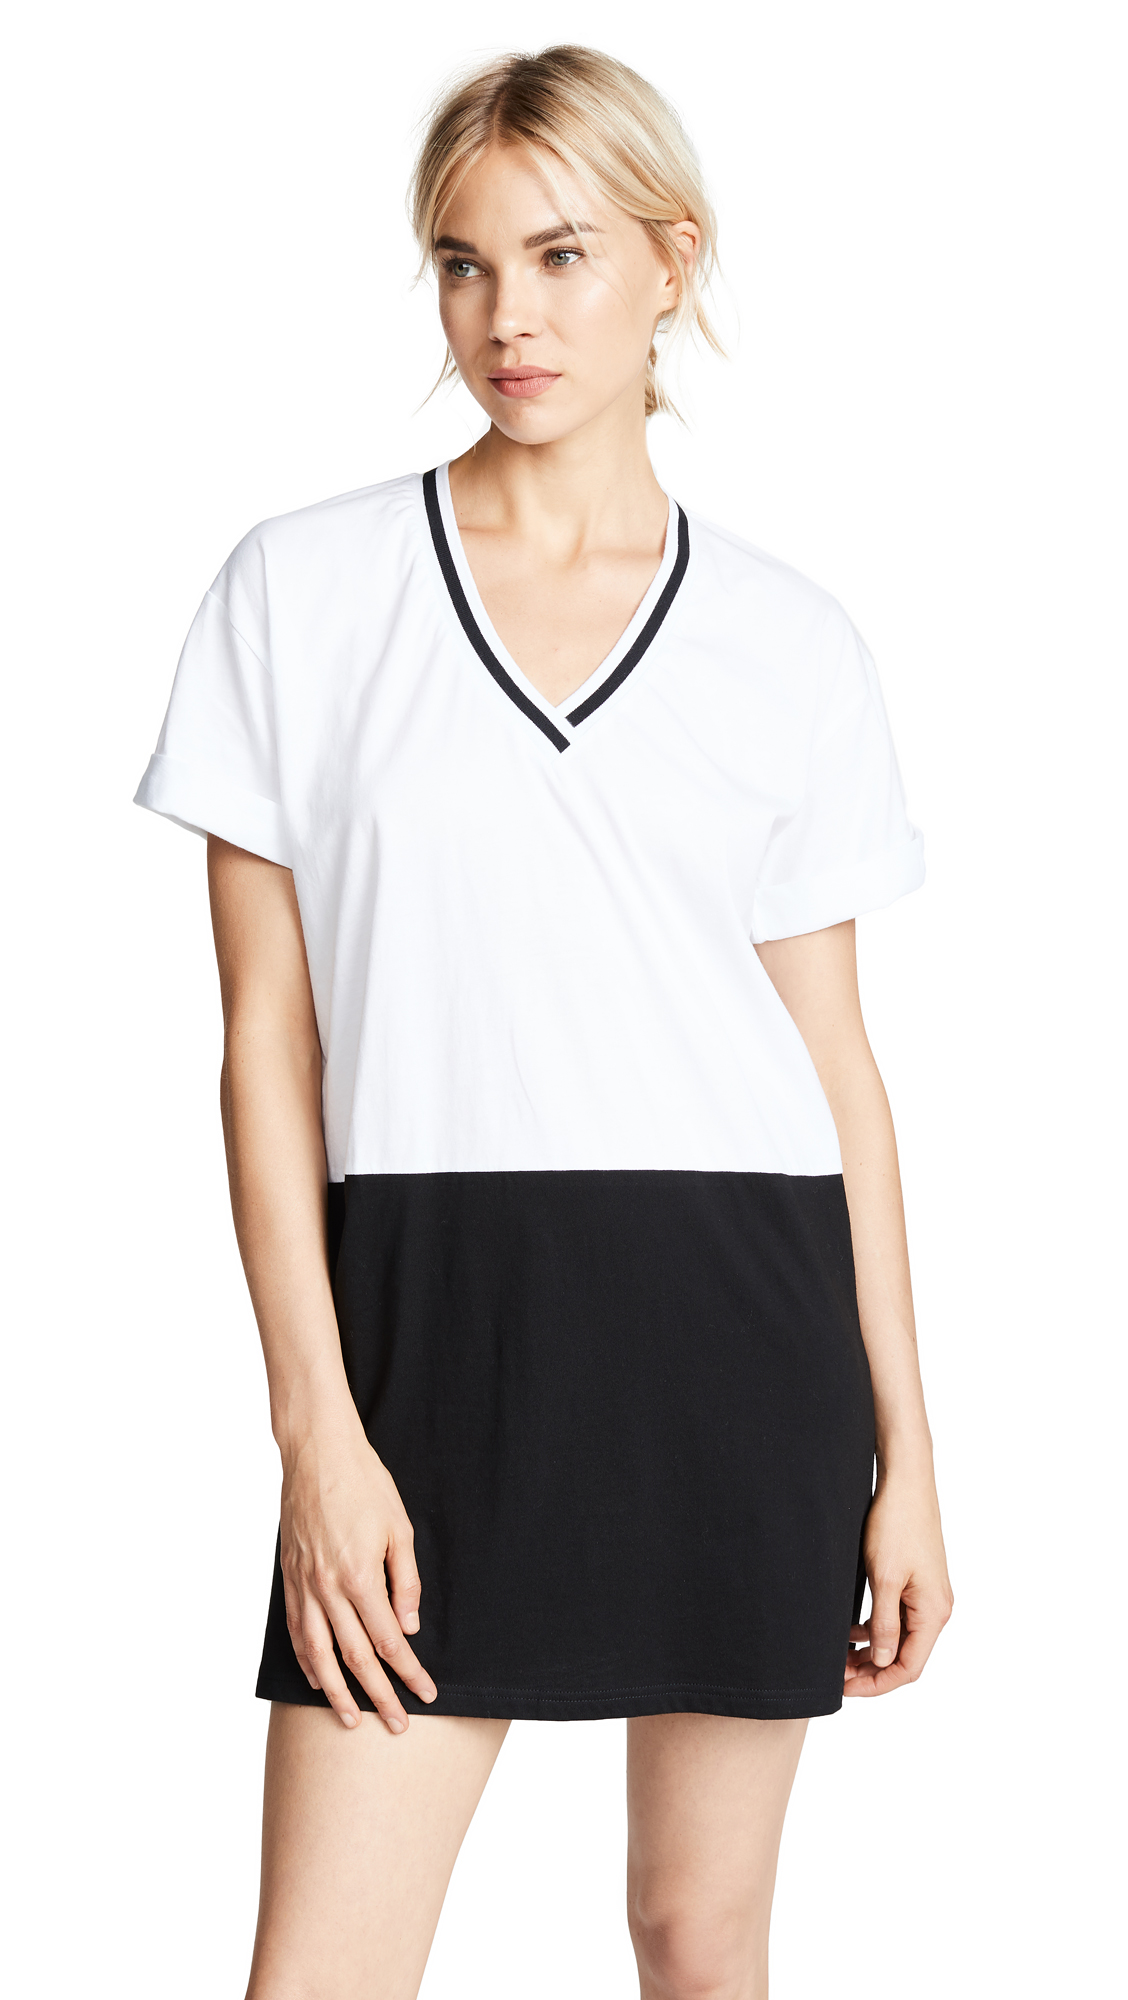 The Fifth Label Perimeter T-Shirt Dress In White/Black